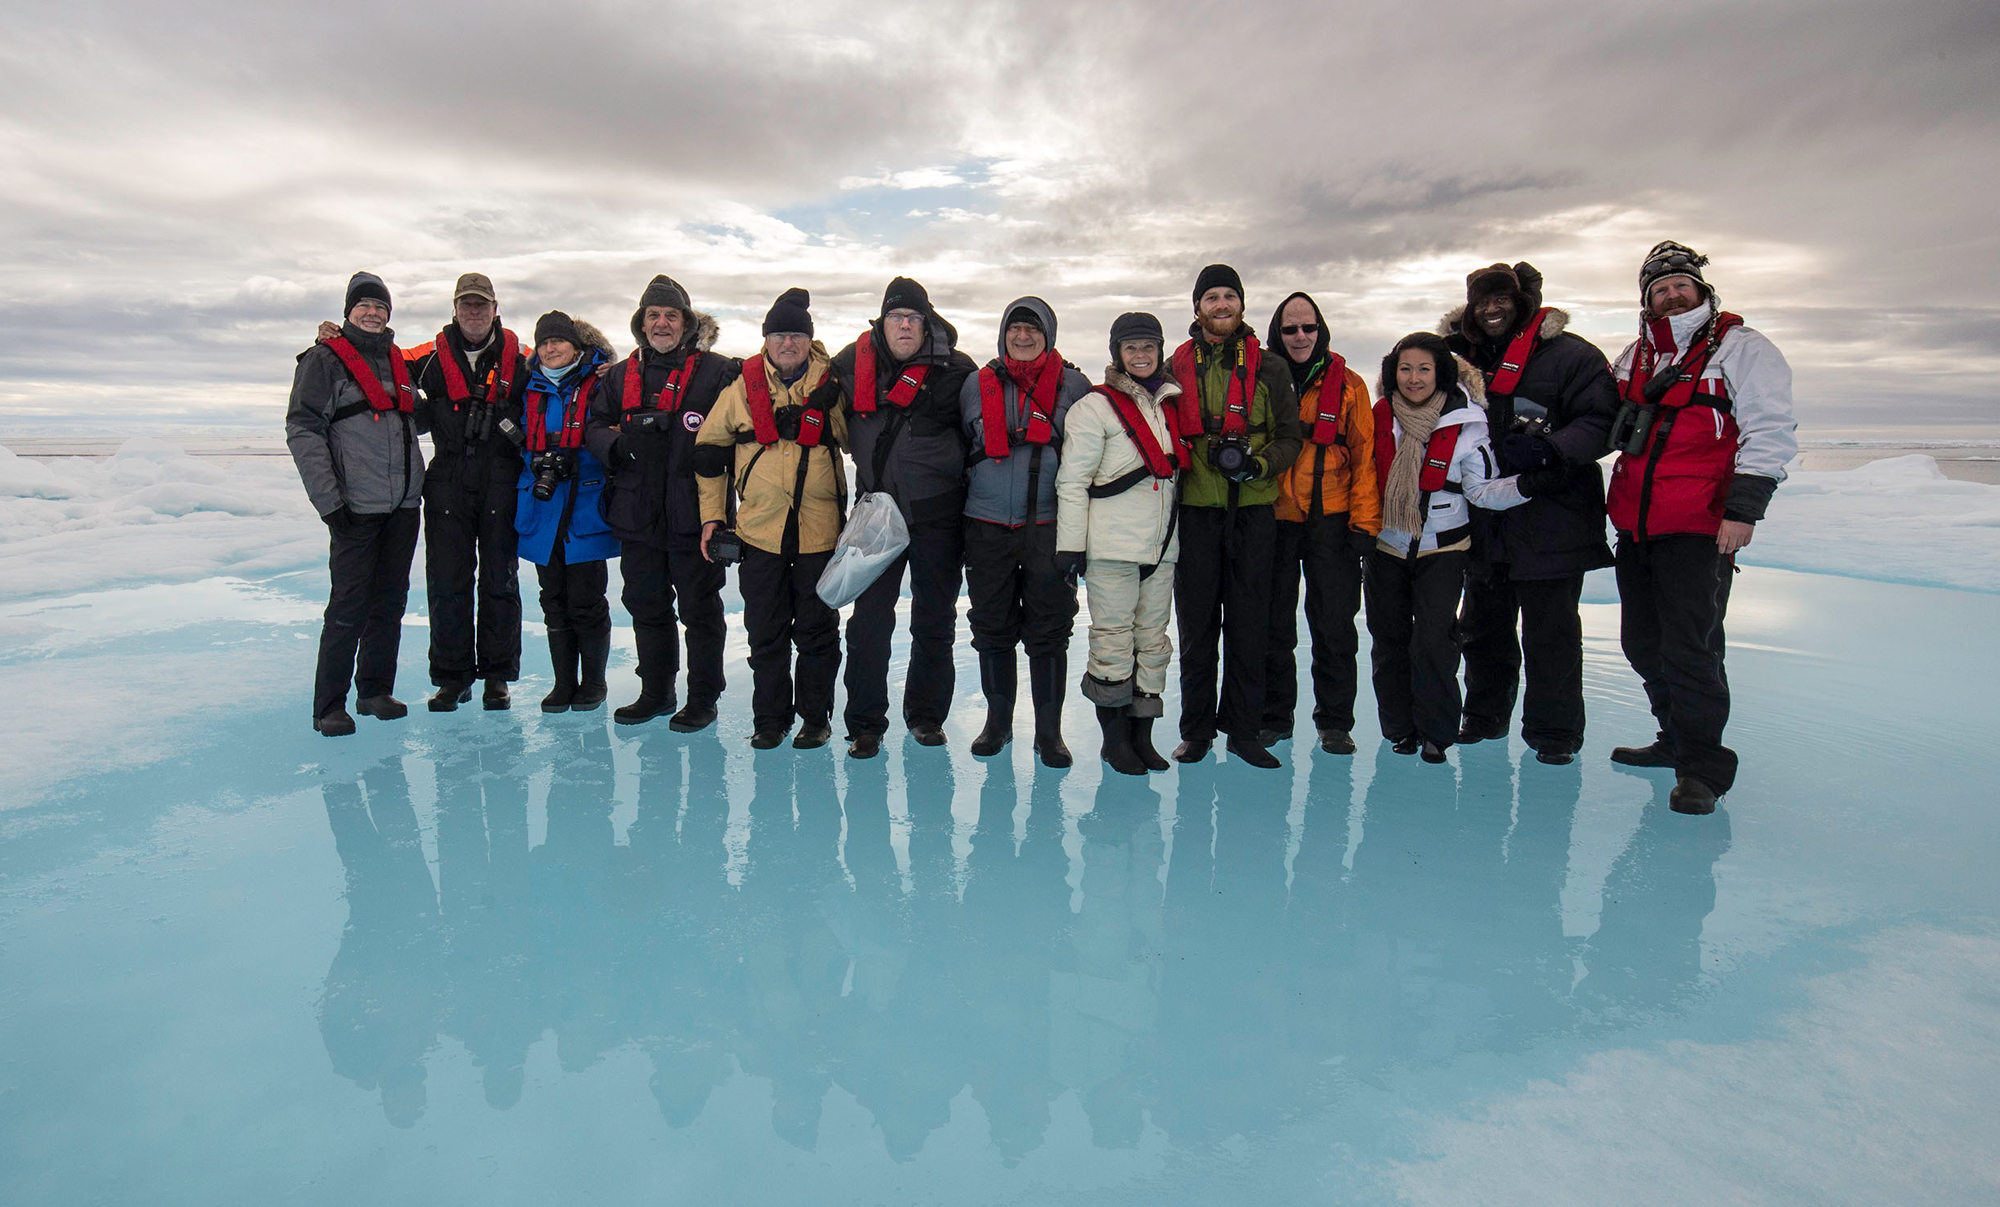 Group photo from a previous trip on an ice flow in the Arctic Ocean